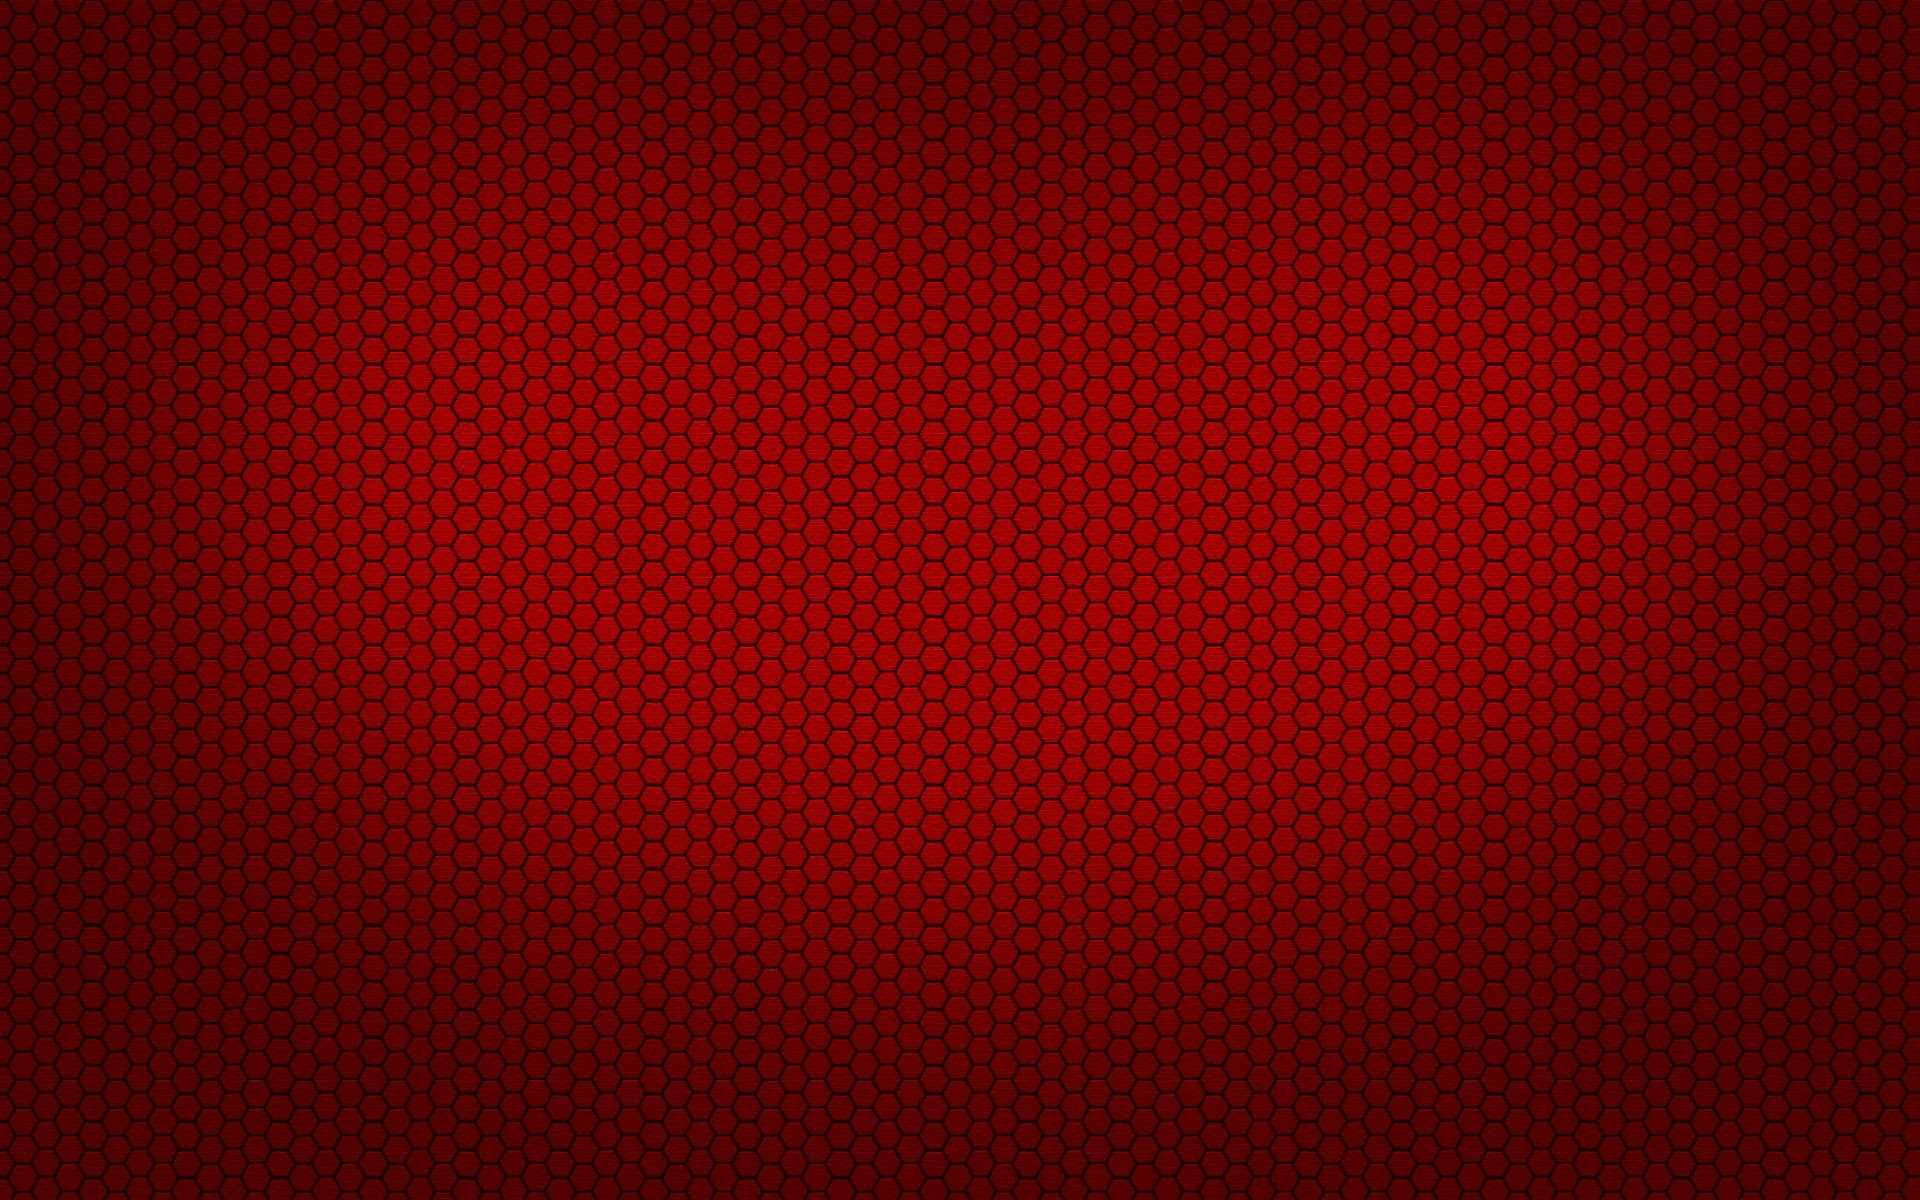 Red Color Background Hd Wallpaper